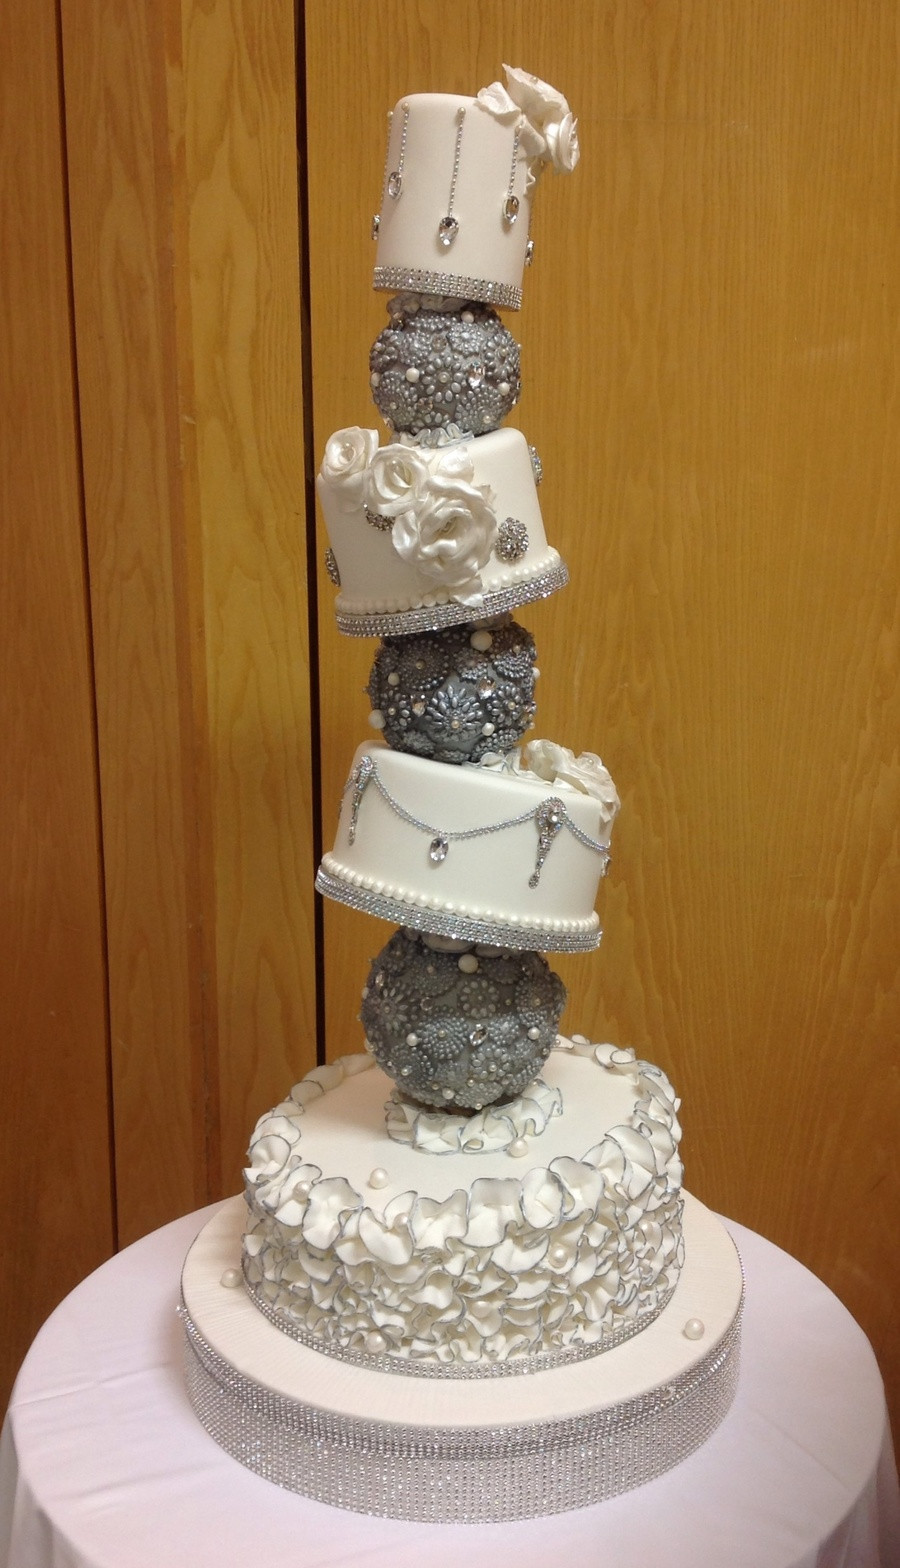 Topsy Turvy Wedding Cakes  Topsy Turvy Wedding Cake CakeCentral